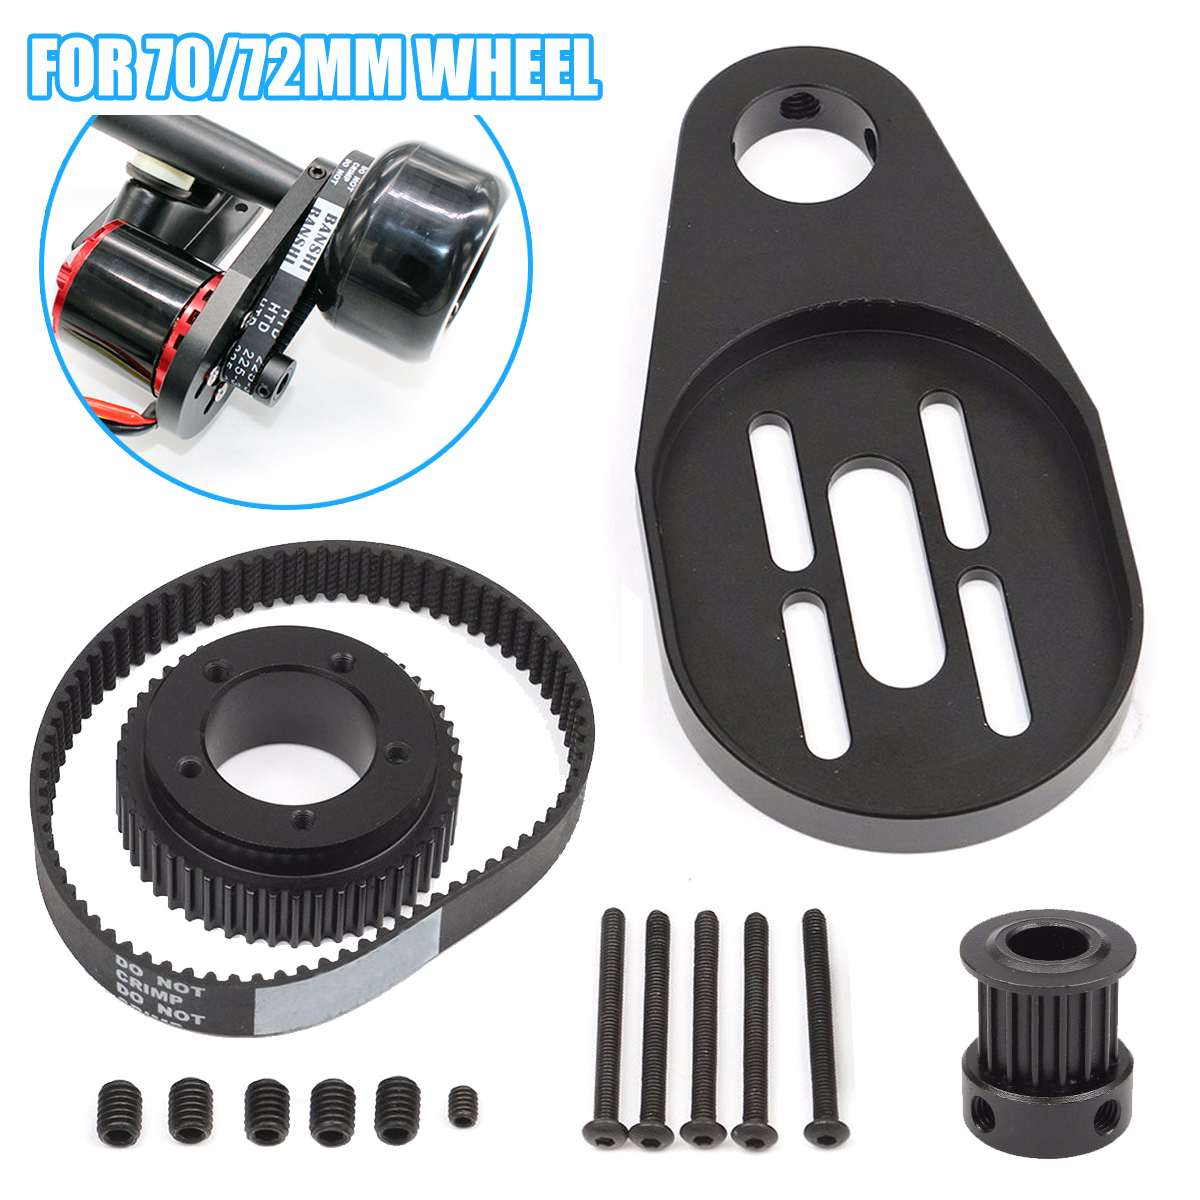 DIY Parts Pulley + Motor Mount Drive Kit For 72MM/70MM Wheel Electric Skateboard Home DIY Kit